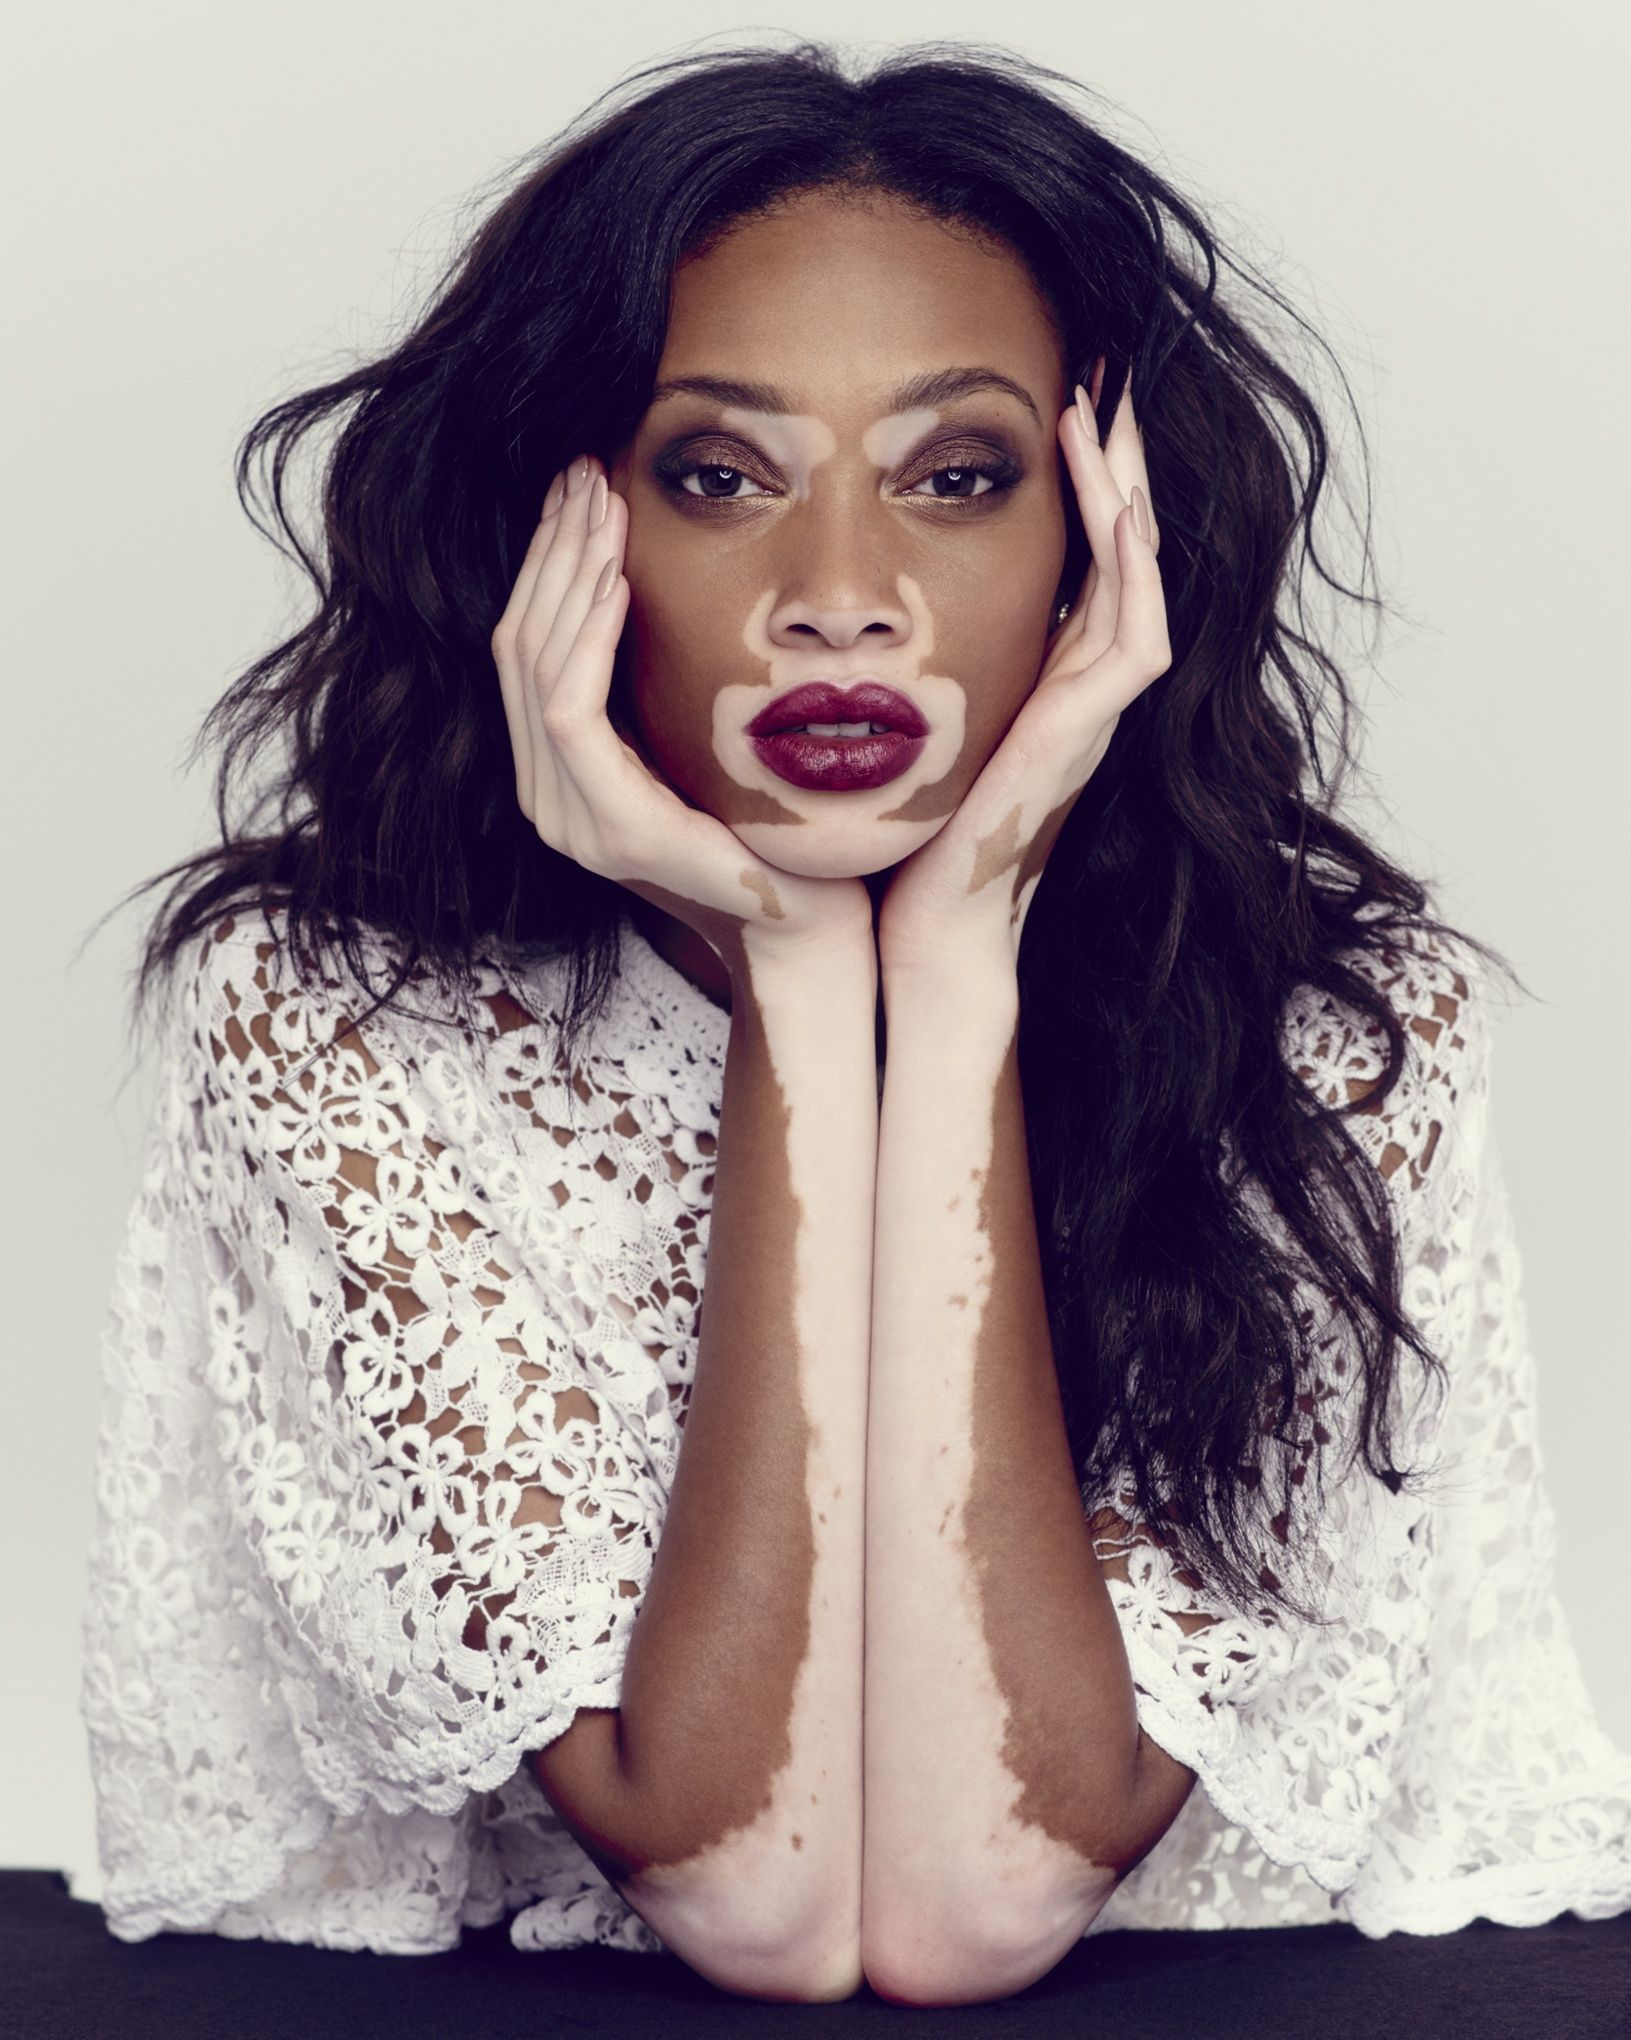 Chantelle winnie skin condition called vitiligo diversity is the future of fashion